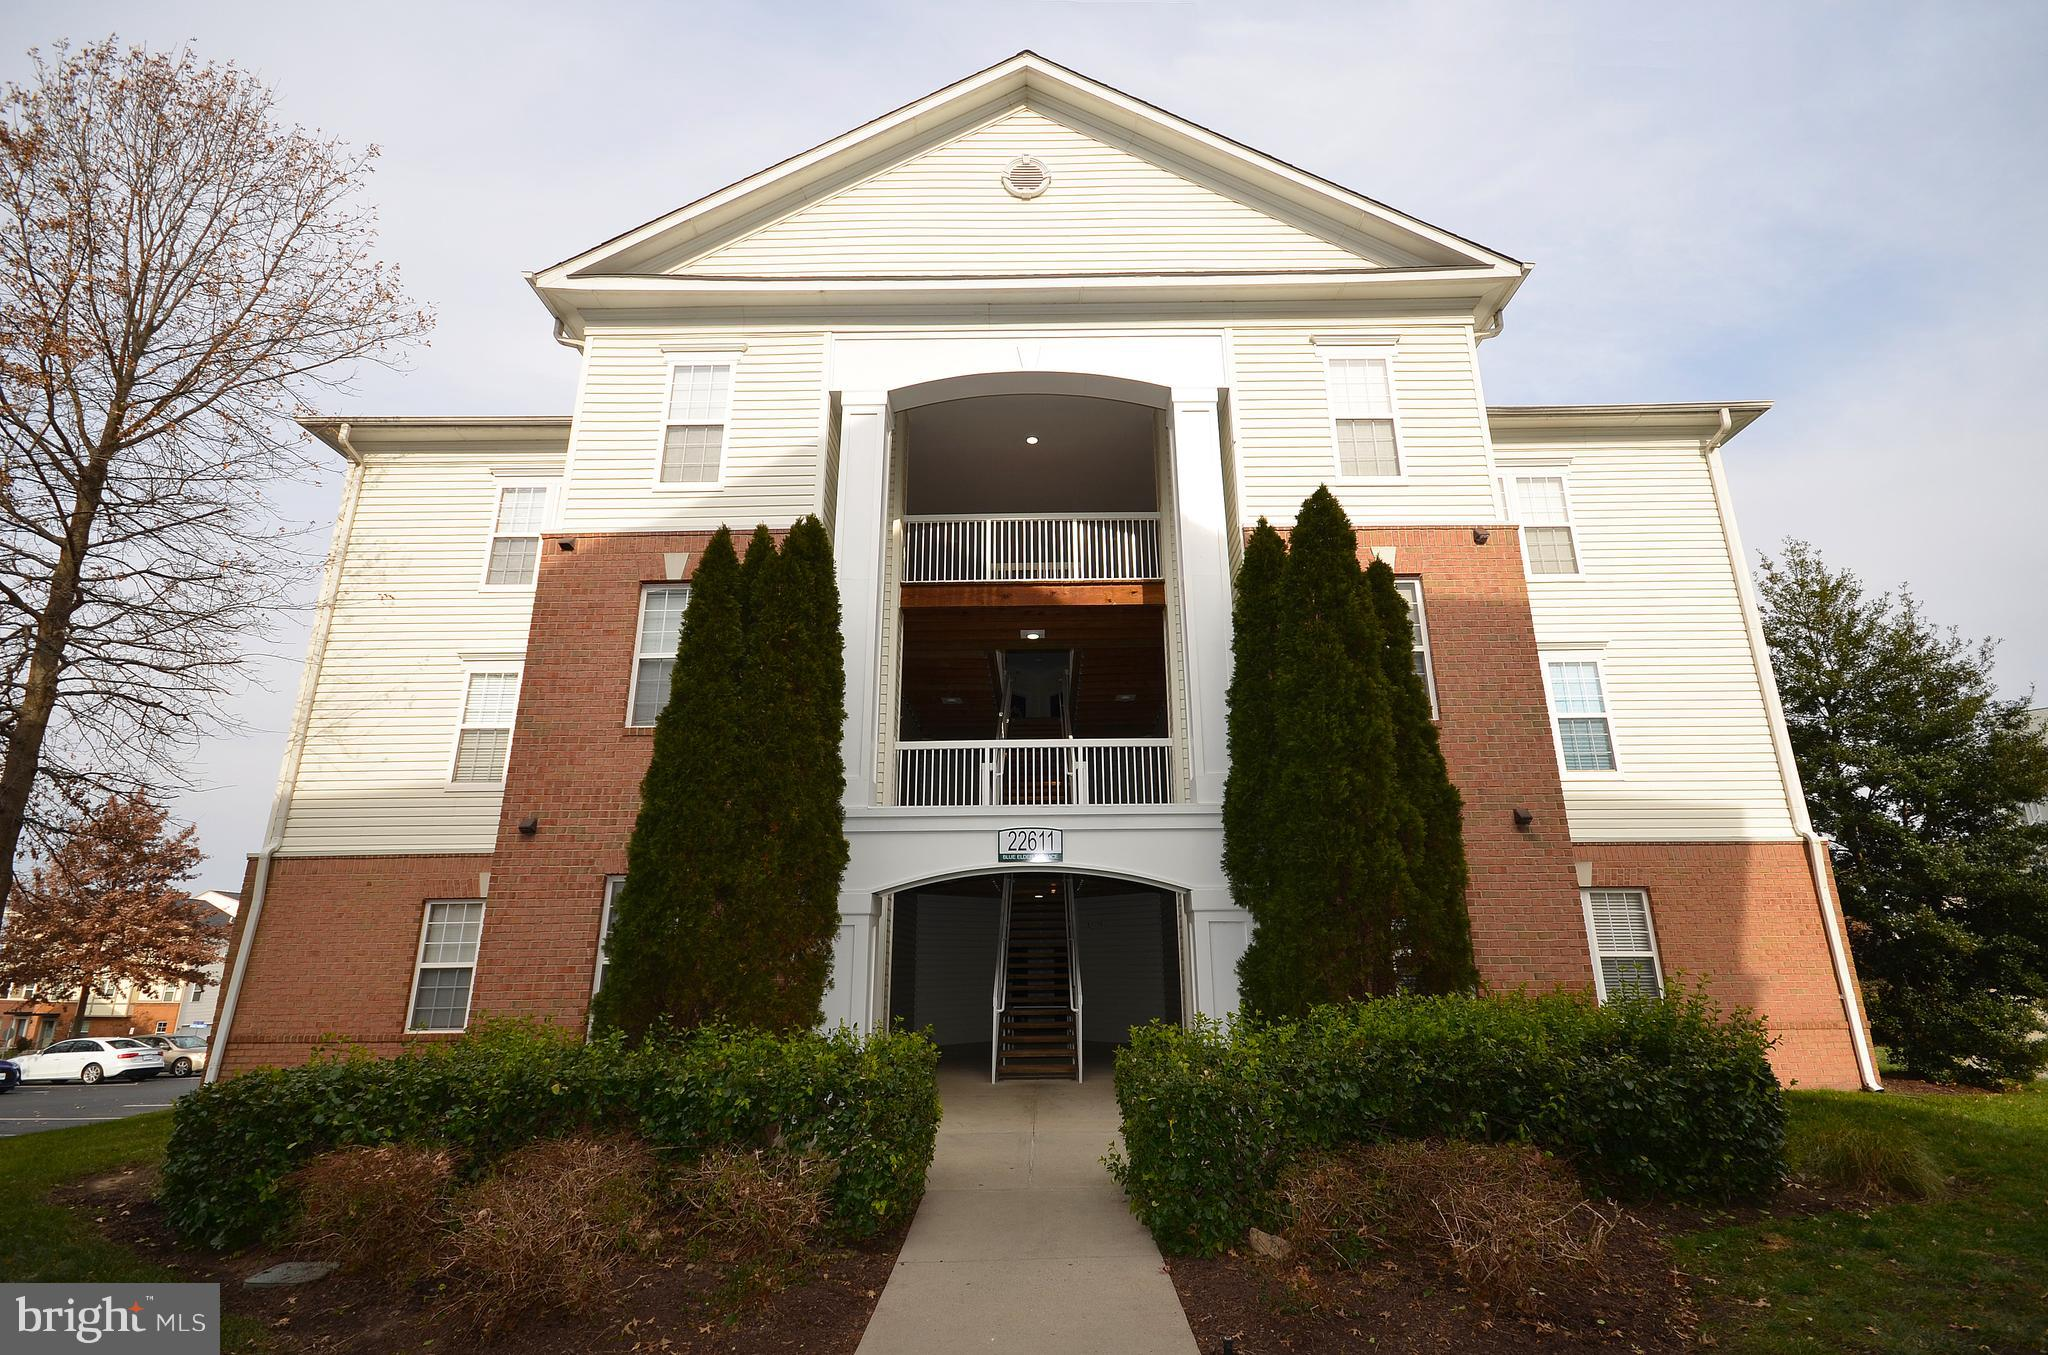 Rarely available 2 bedroom/2 bath main level condo located in sought after Summerfield at Brambleton